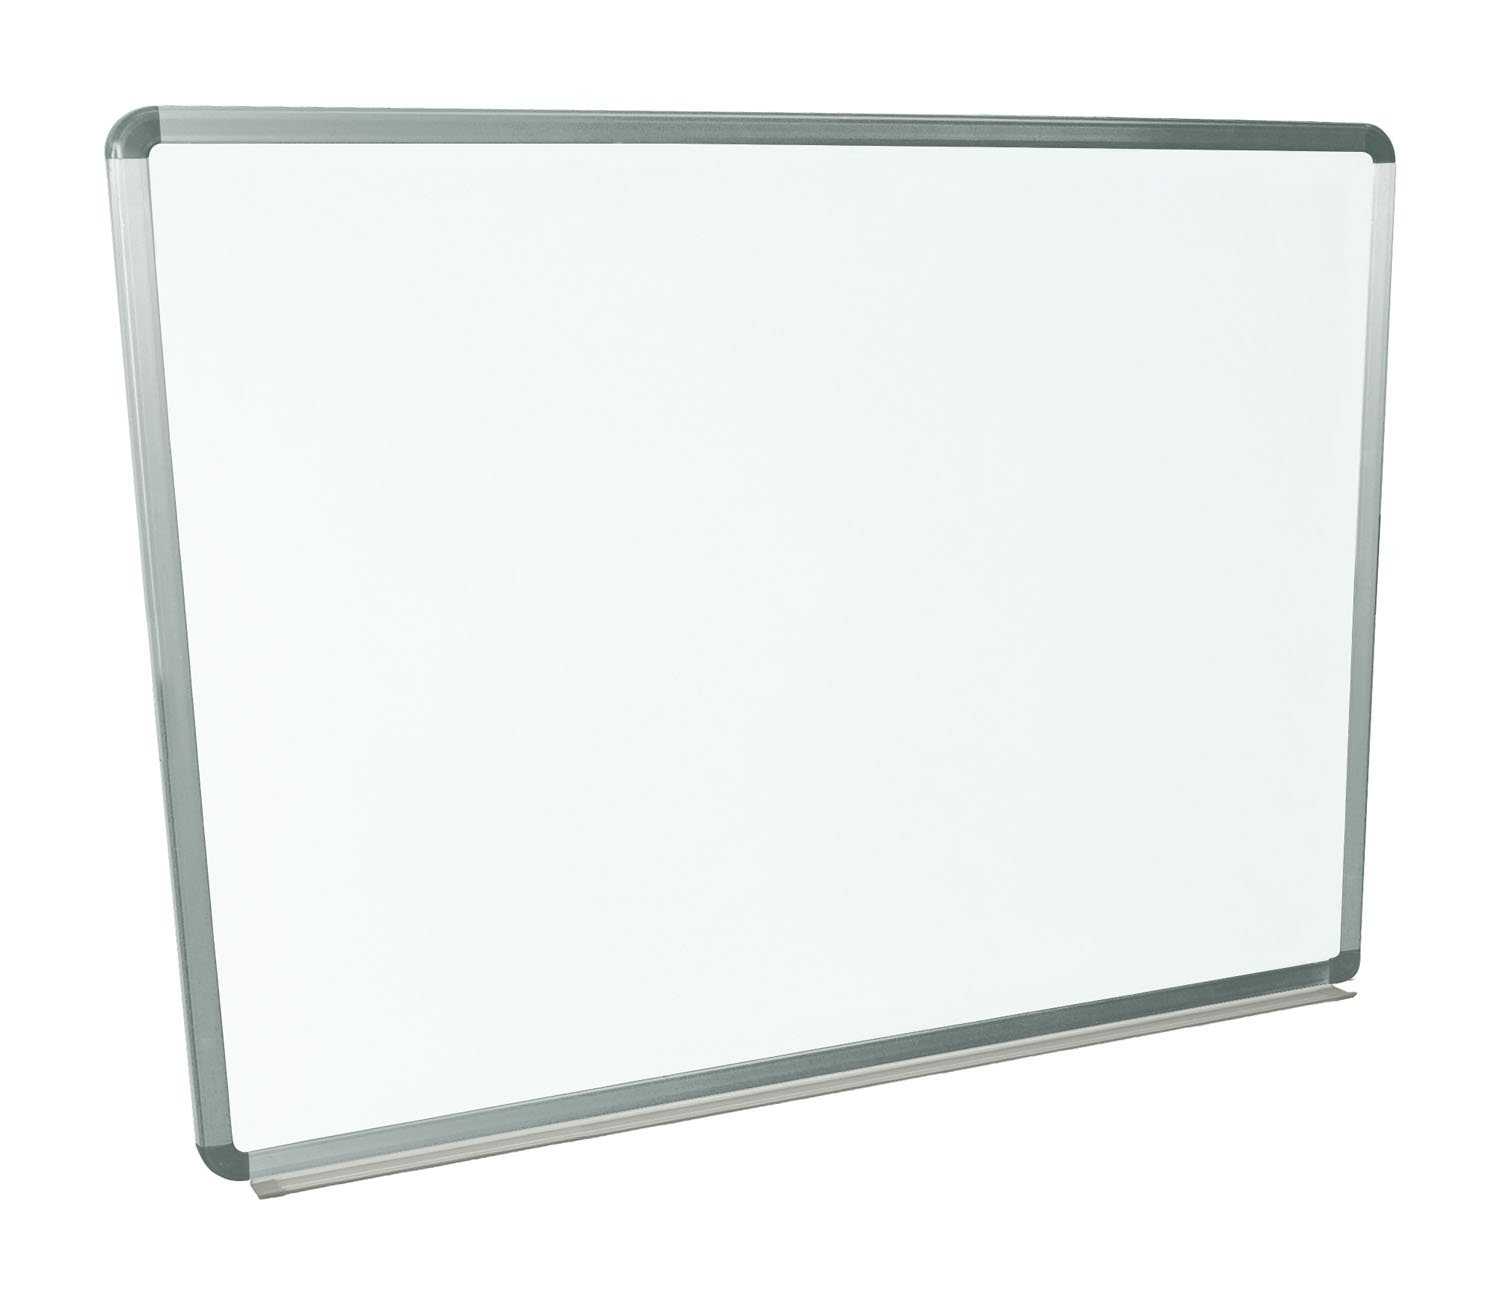 Offex 48W x 36H Wall Mounted Magnetic Whiteboard